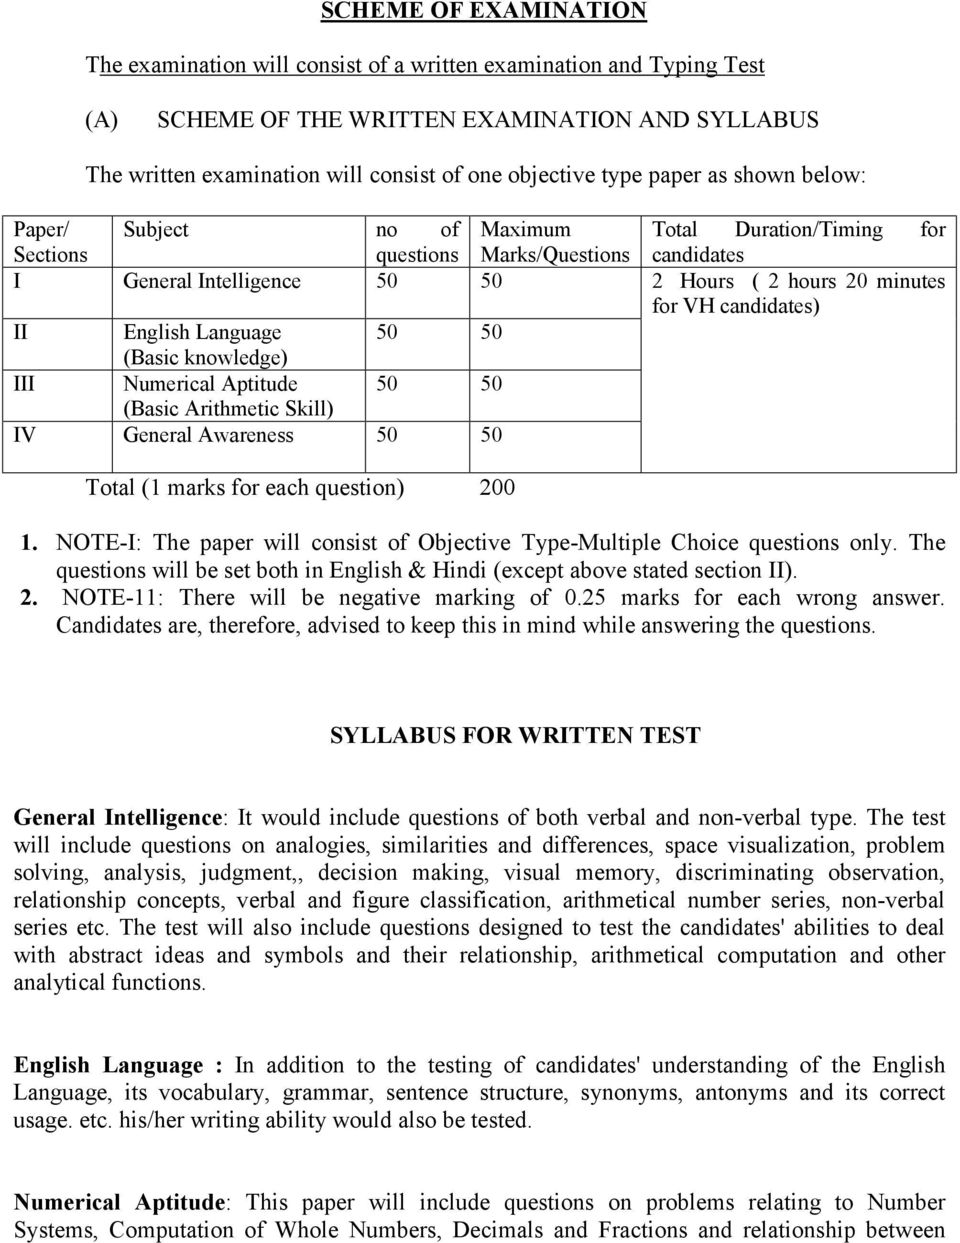 candidates) II English Language 50 50 (Basic knowledge) III Numerical Aptitude 50 50 (Basic Arithmetic Skill) IV General Awareness 50 50 Total (1 marks for each question) 200 1.